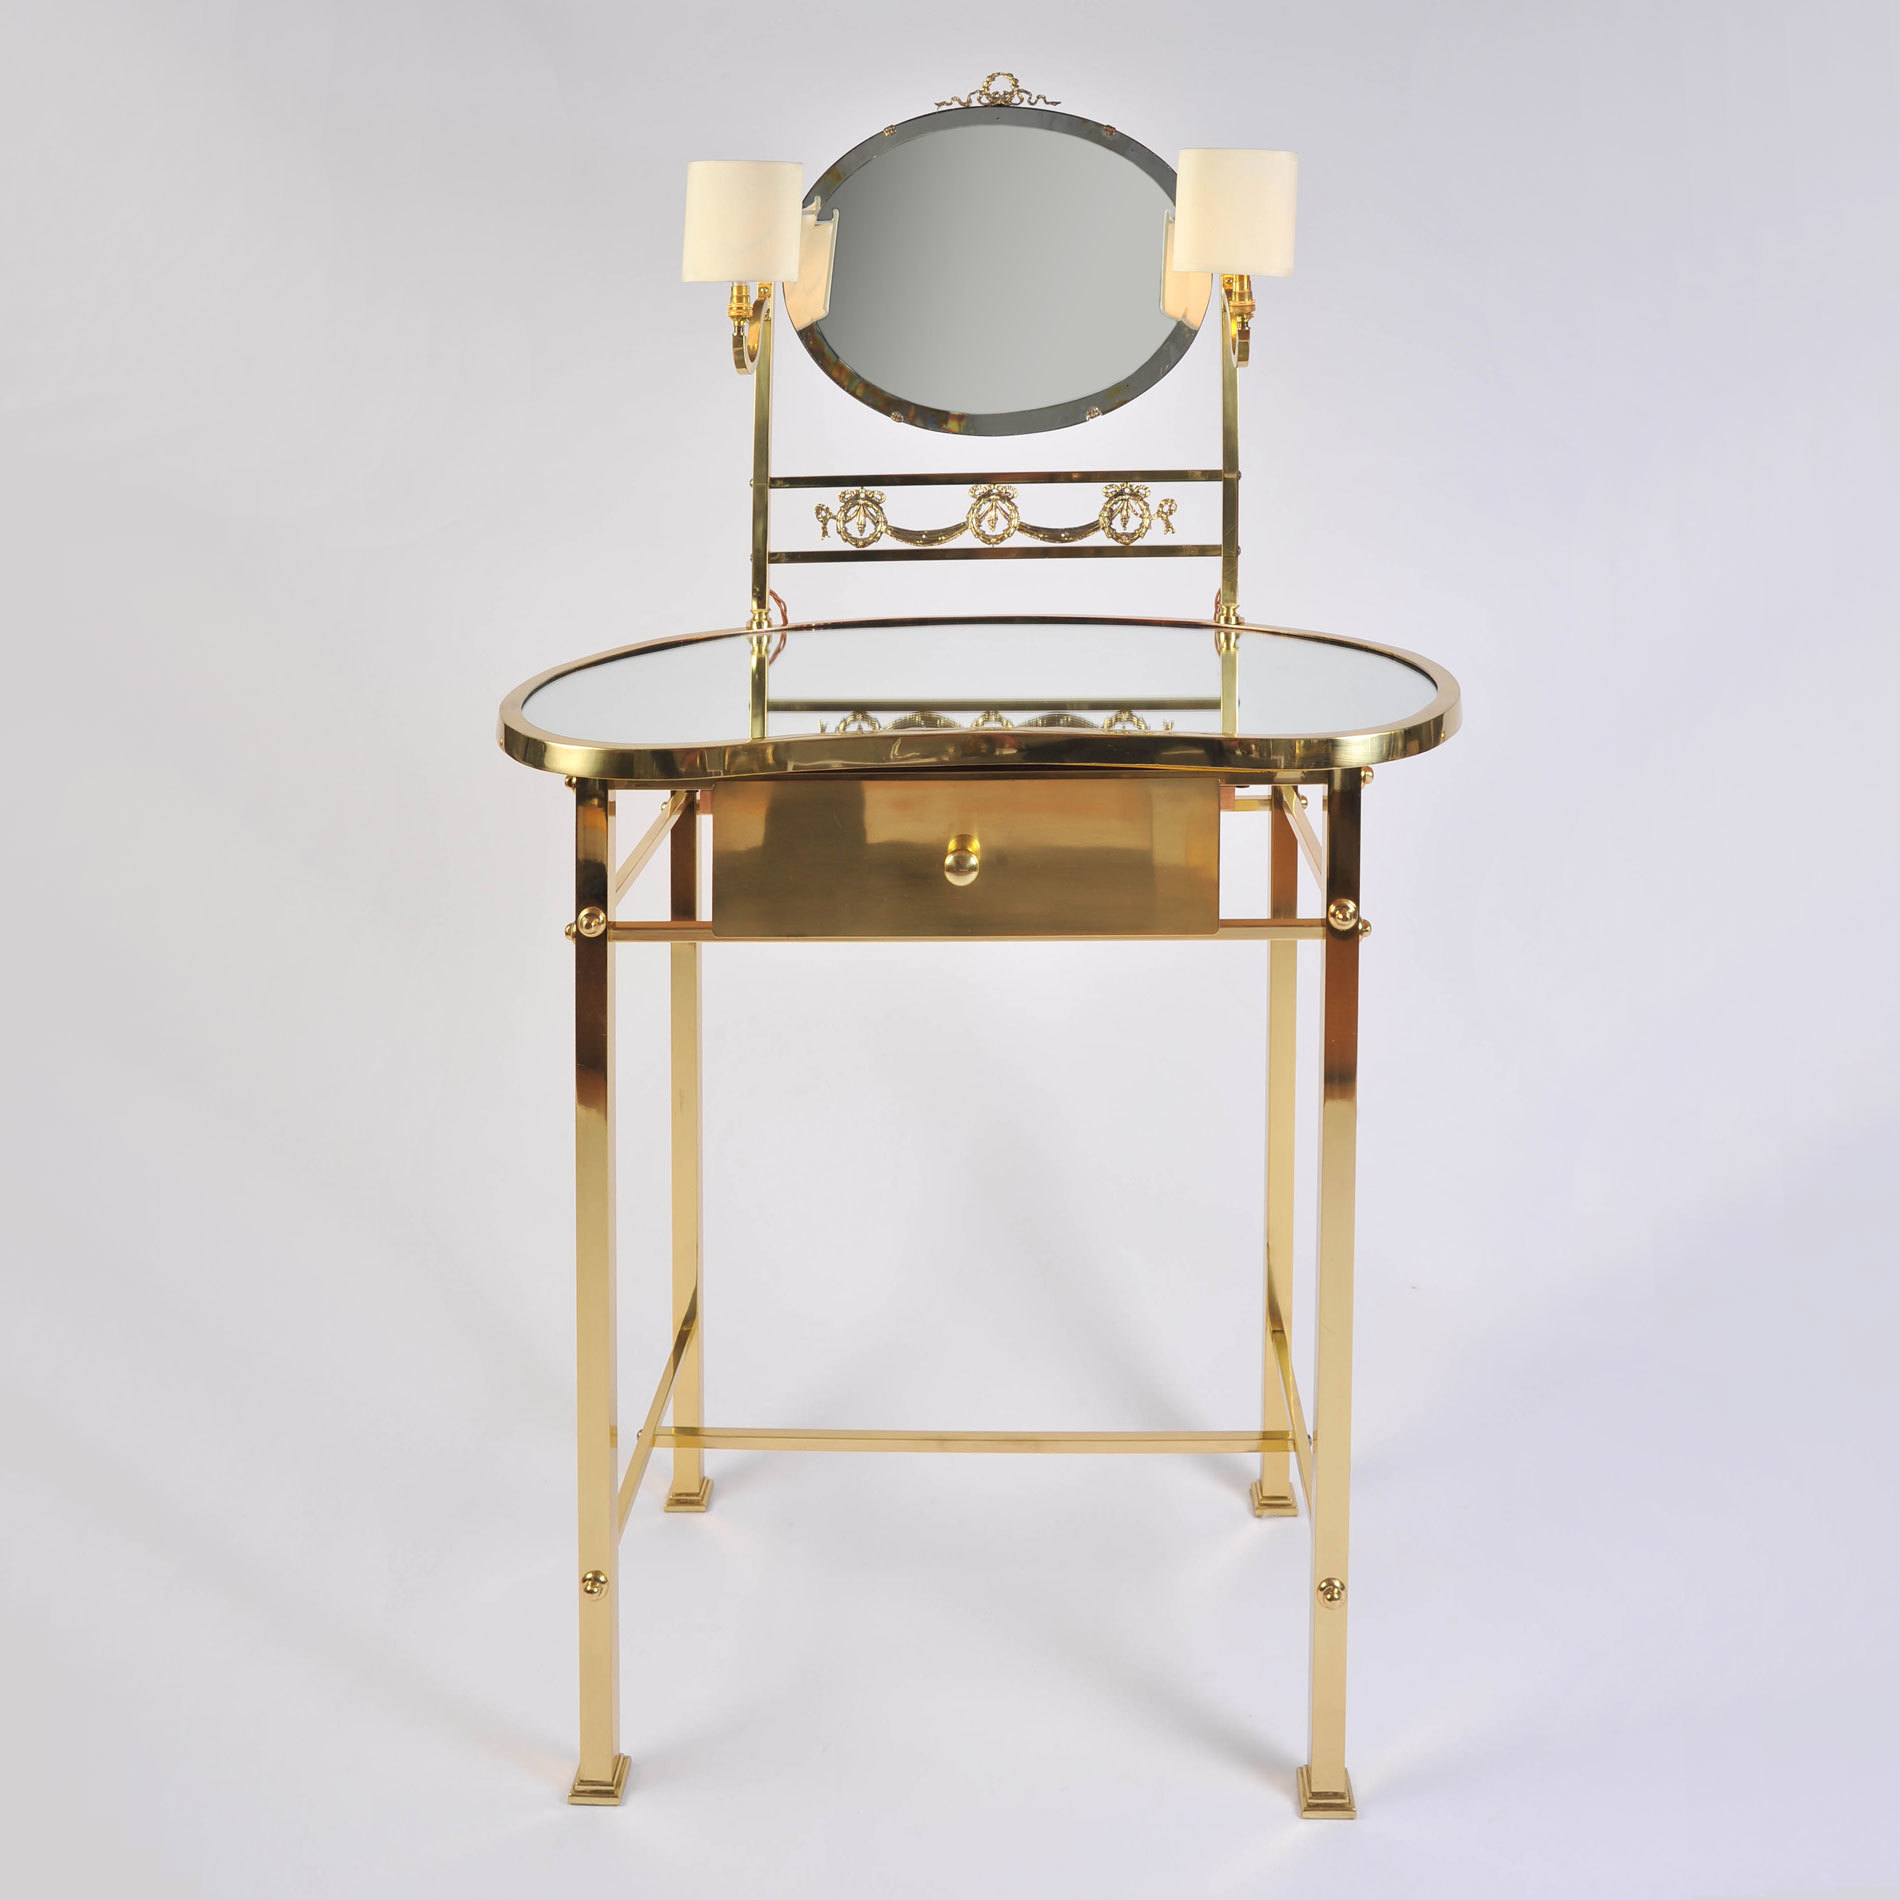 Brass Dressing Table Mirror Lights 01